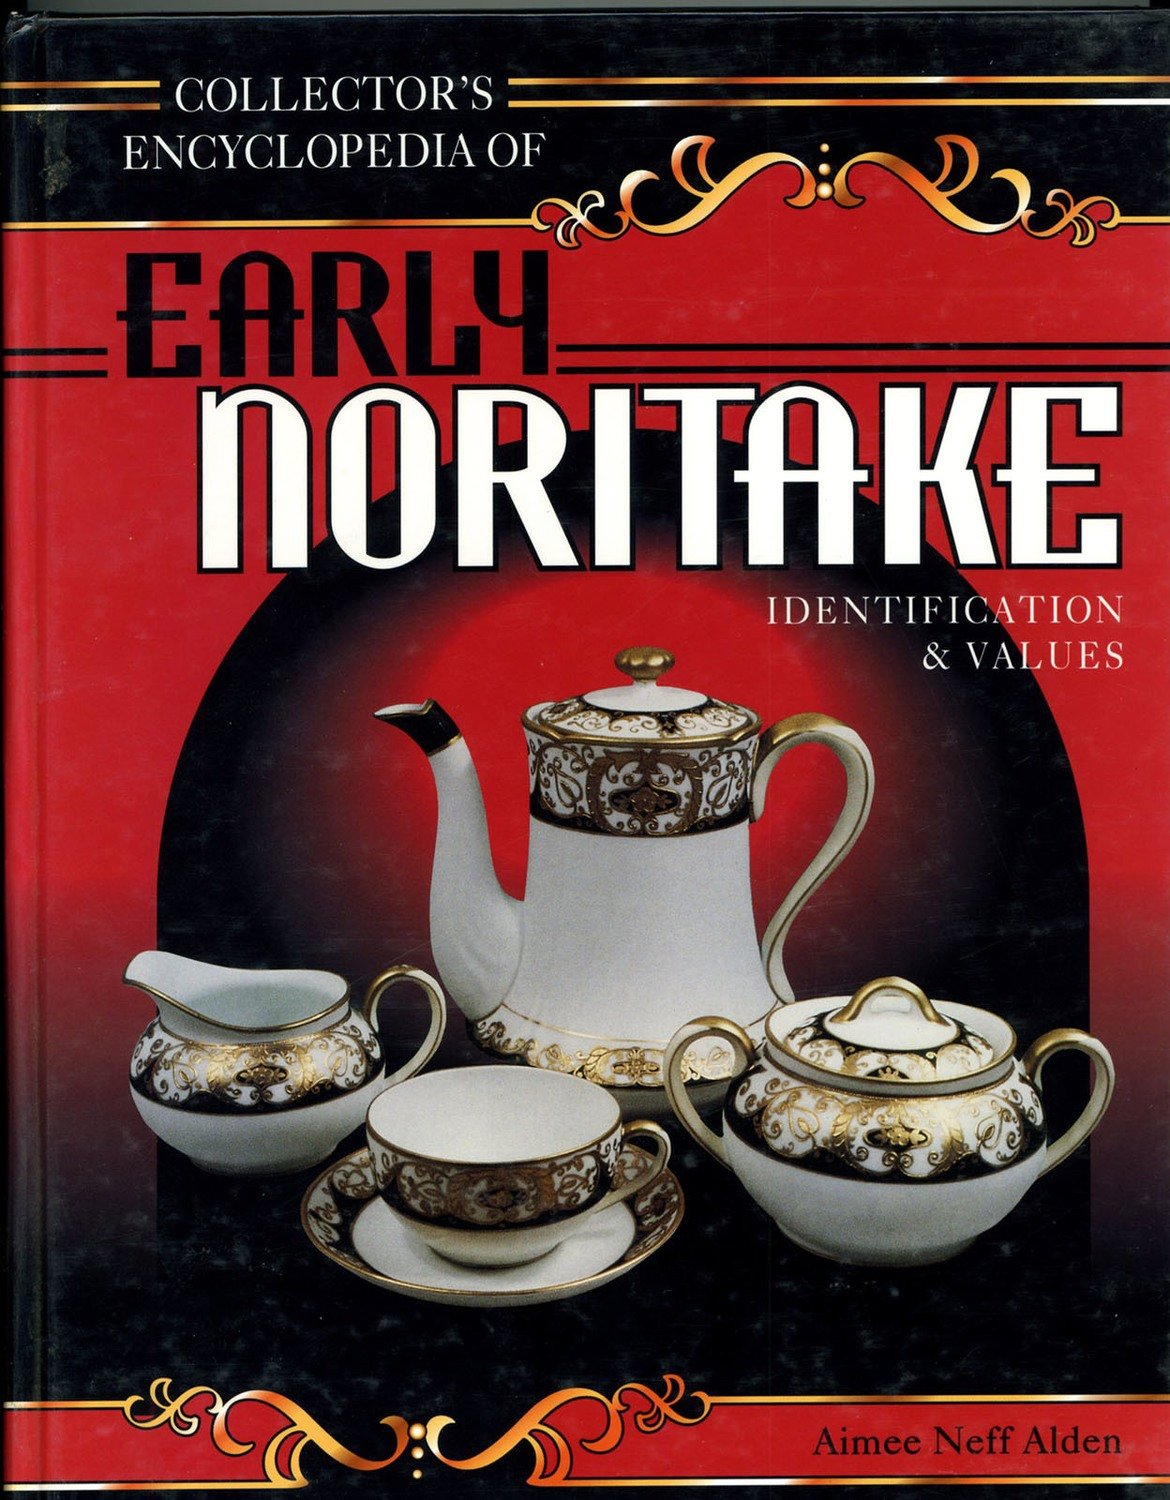 Early Noritake Identification and Values